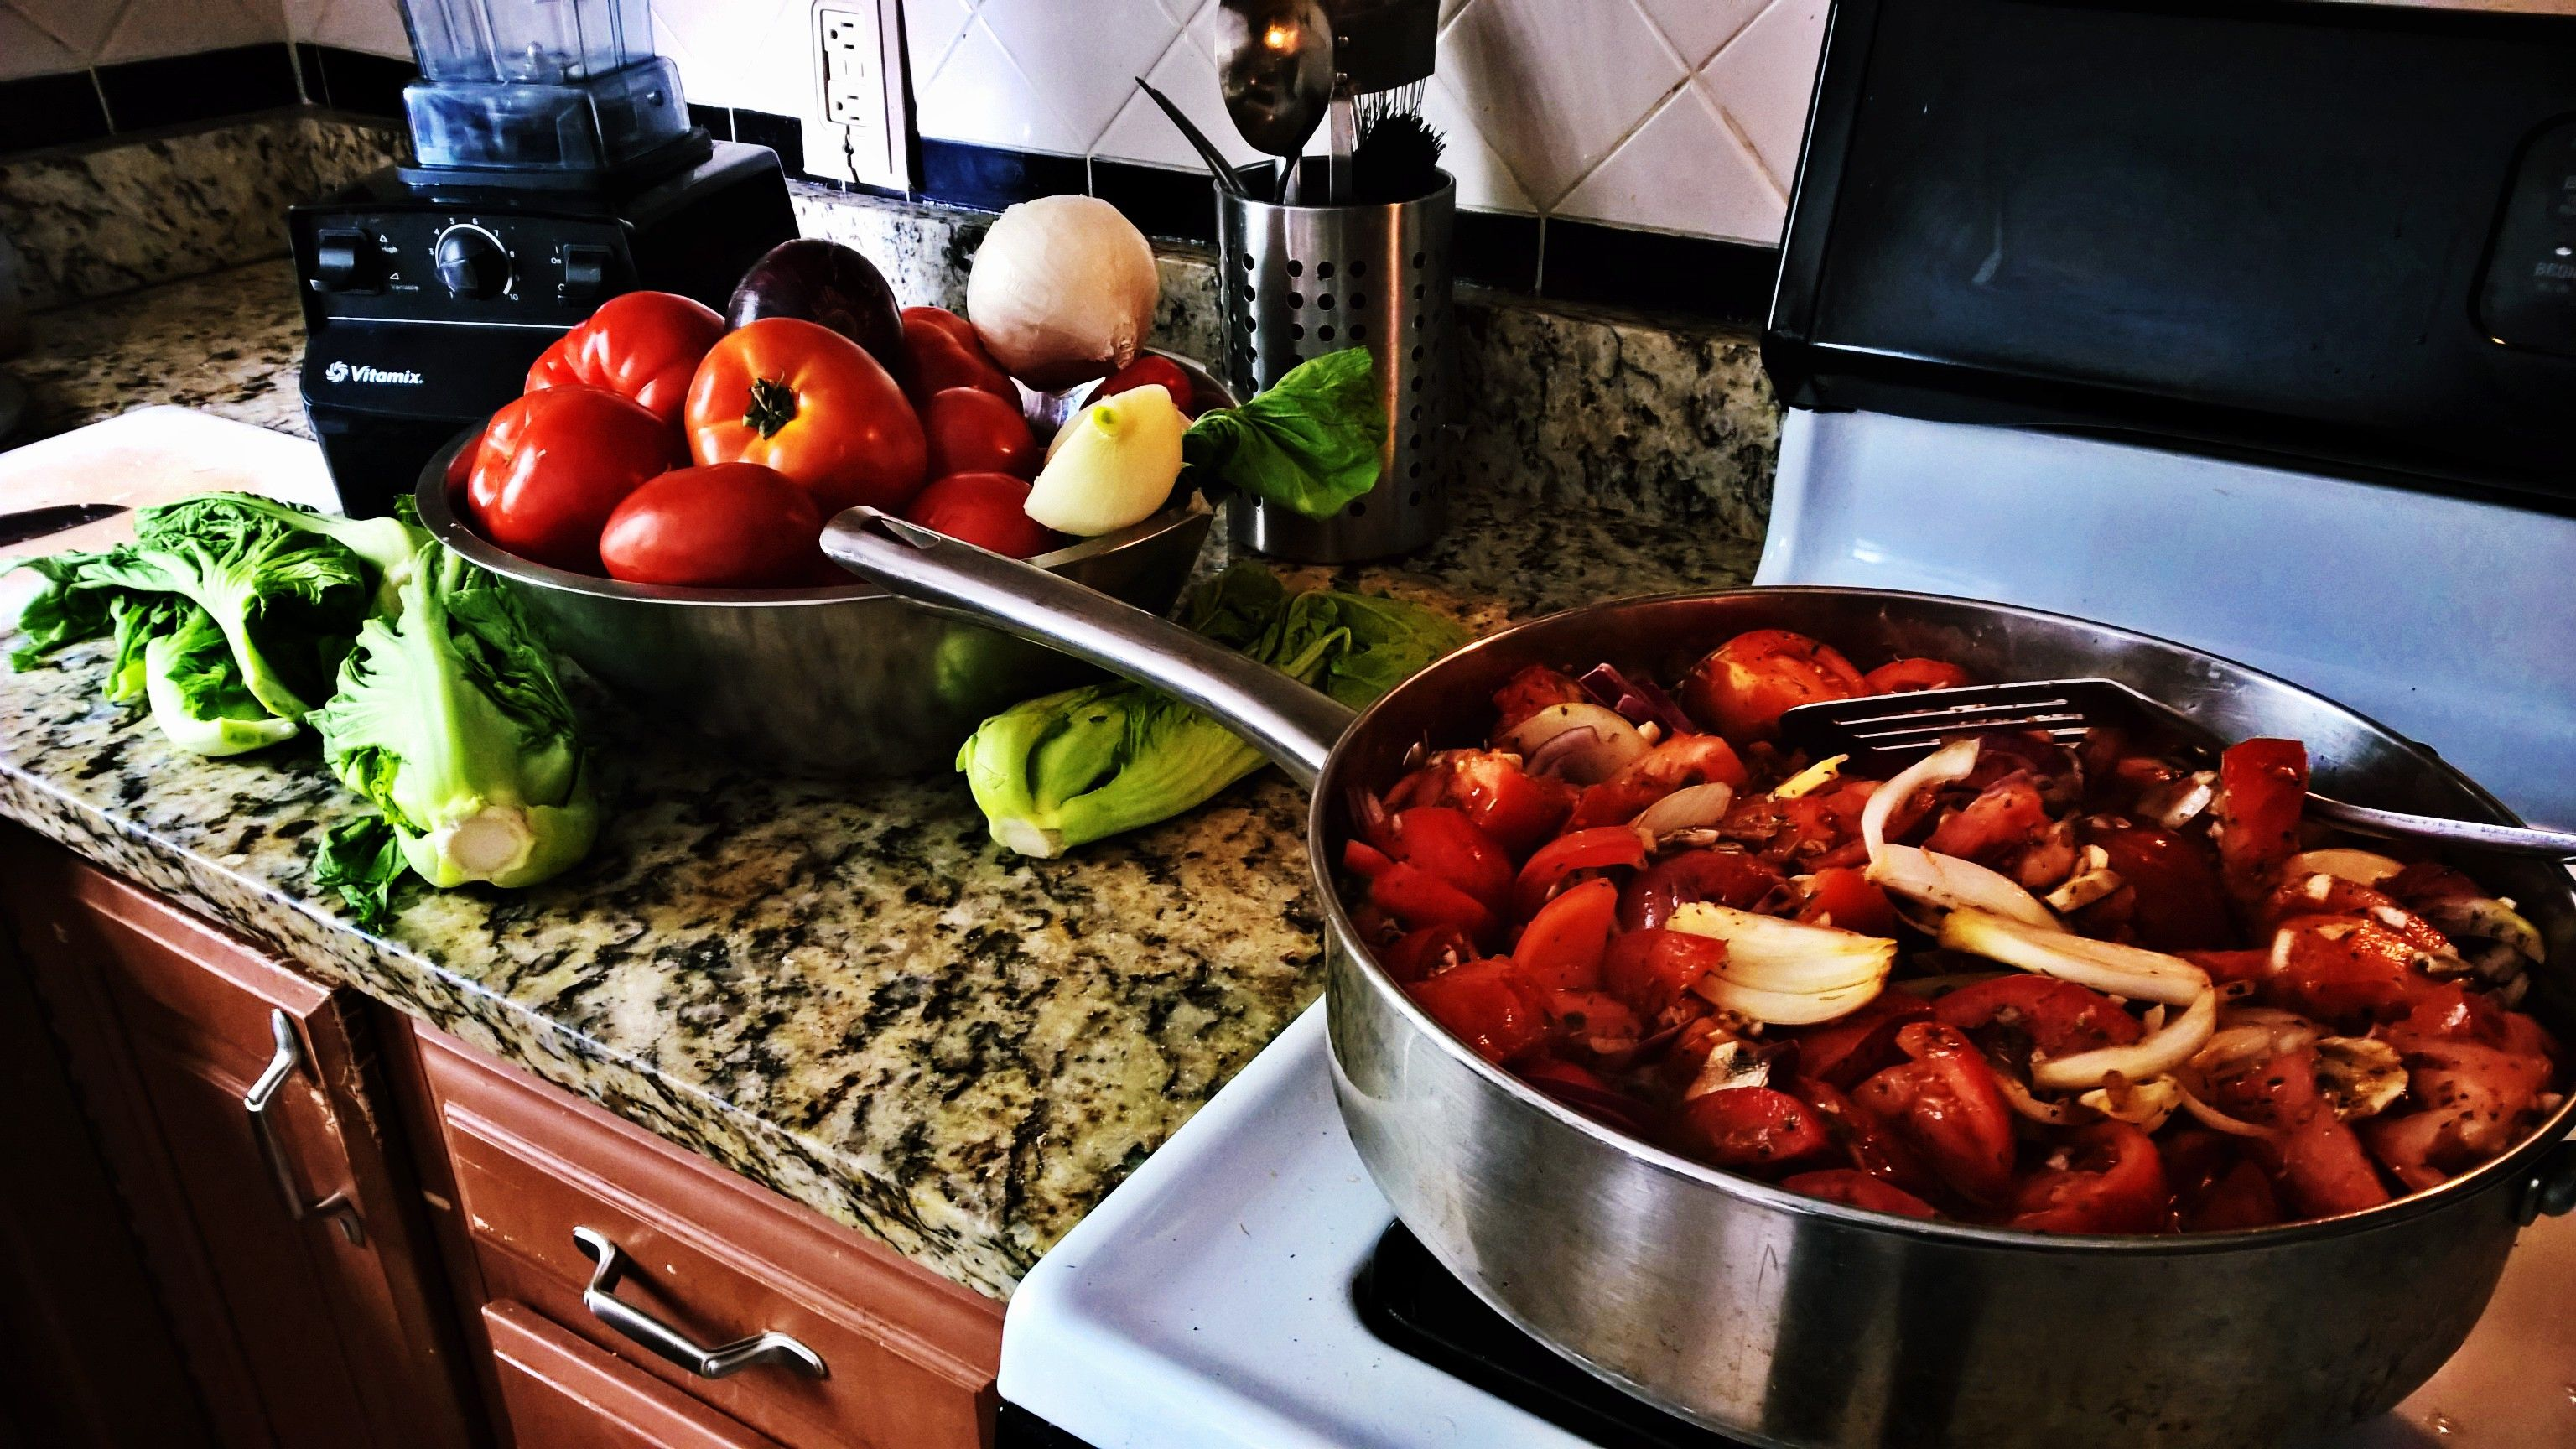 Homemade spaghetti sauce with red peppers and tomatoes from the garden